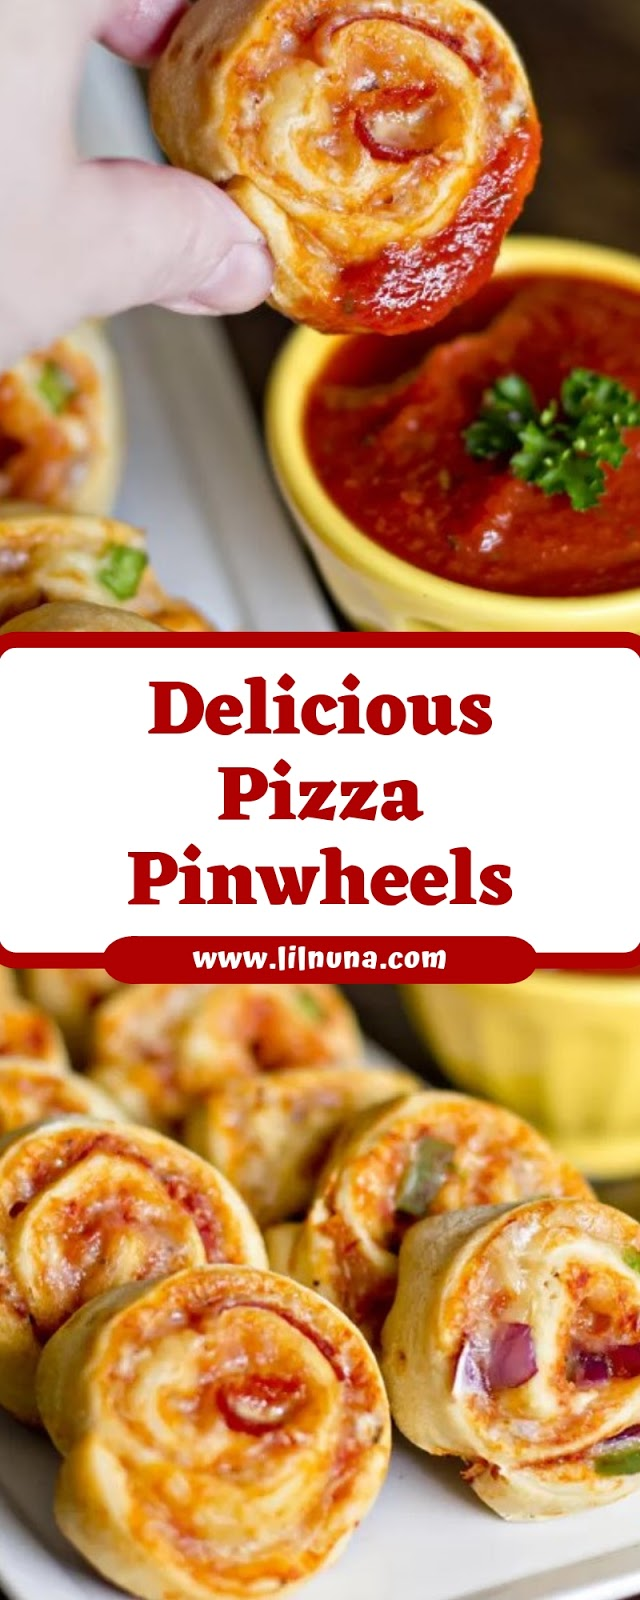 Delicious Pizza Pinwheels